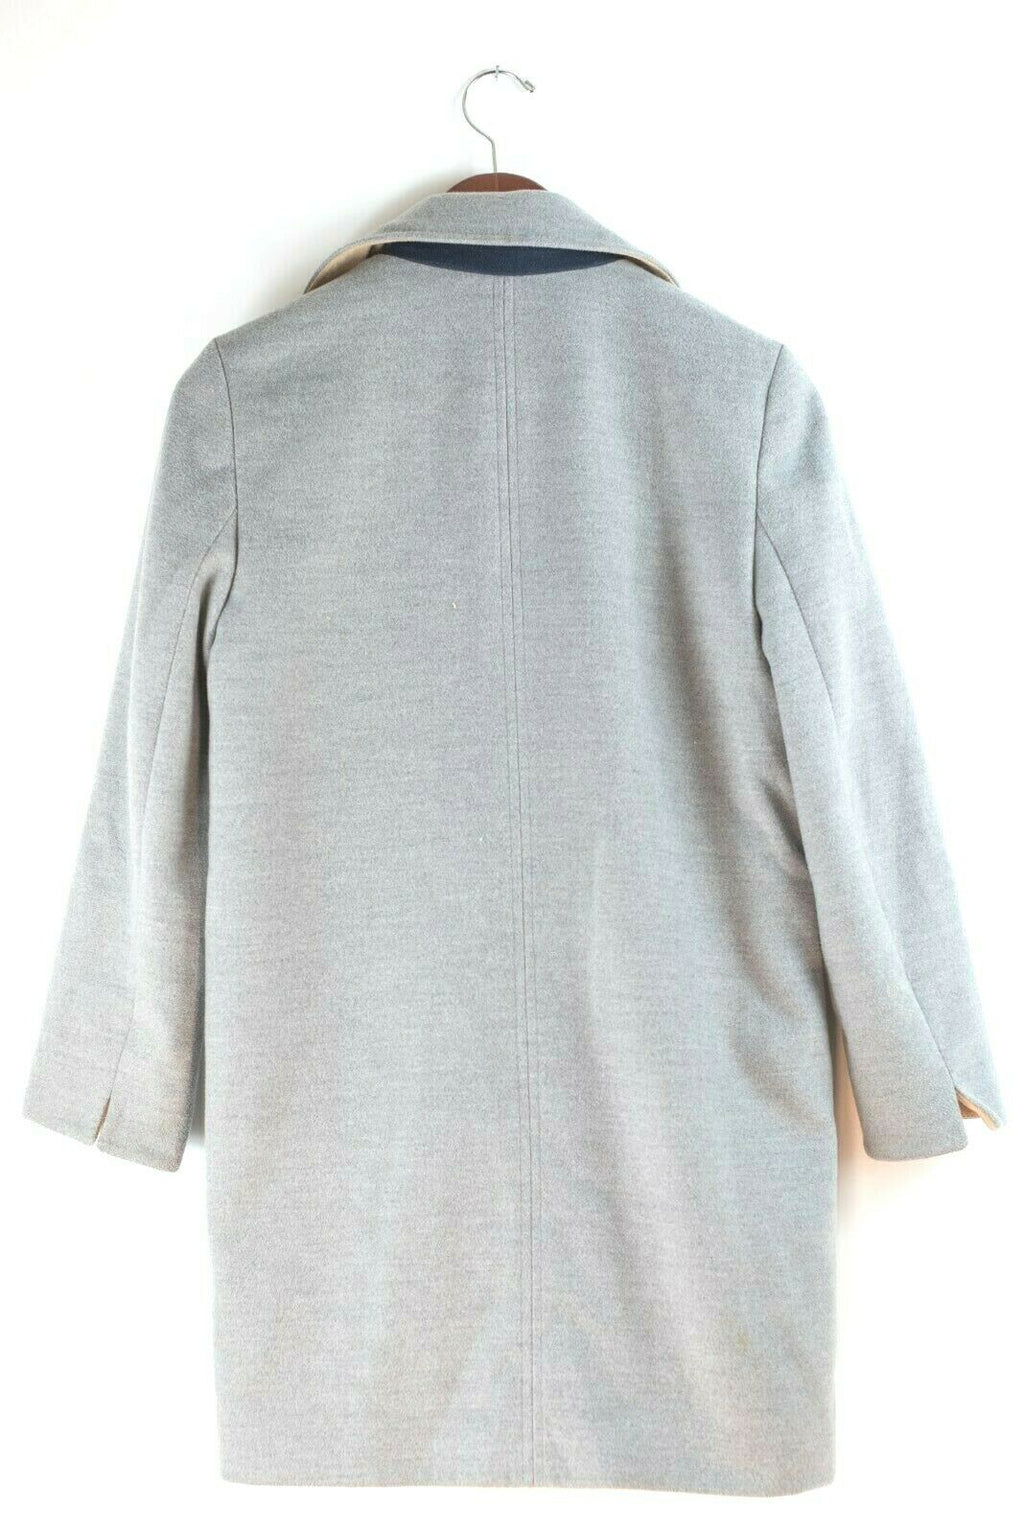 TopShop Womens Size 4 Grey Coat Oversized Zipper Pockets Duster Overcoat Jacket